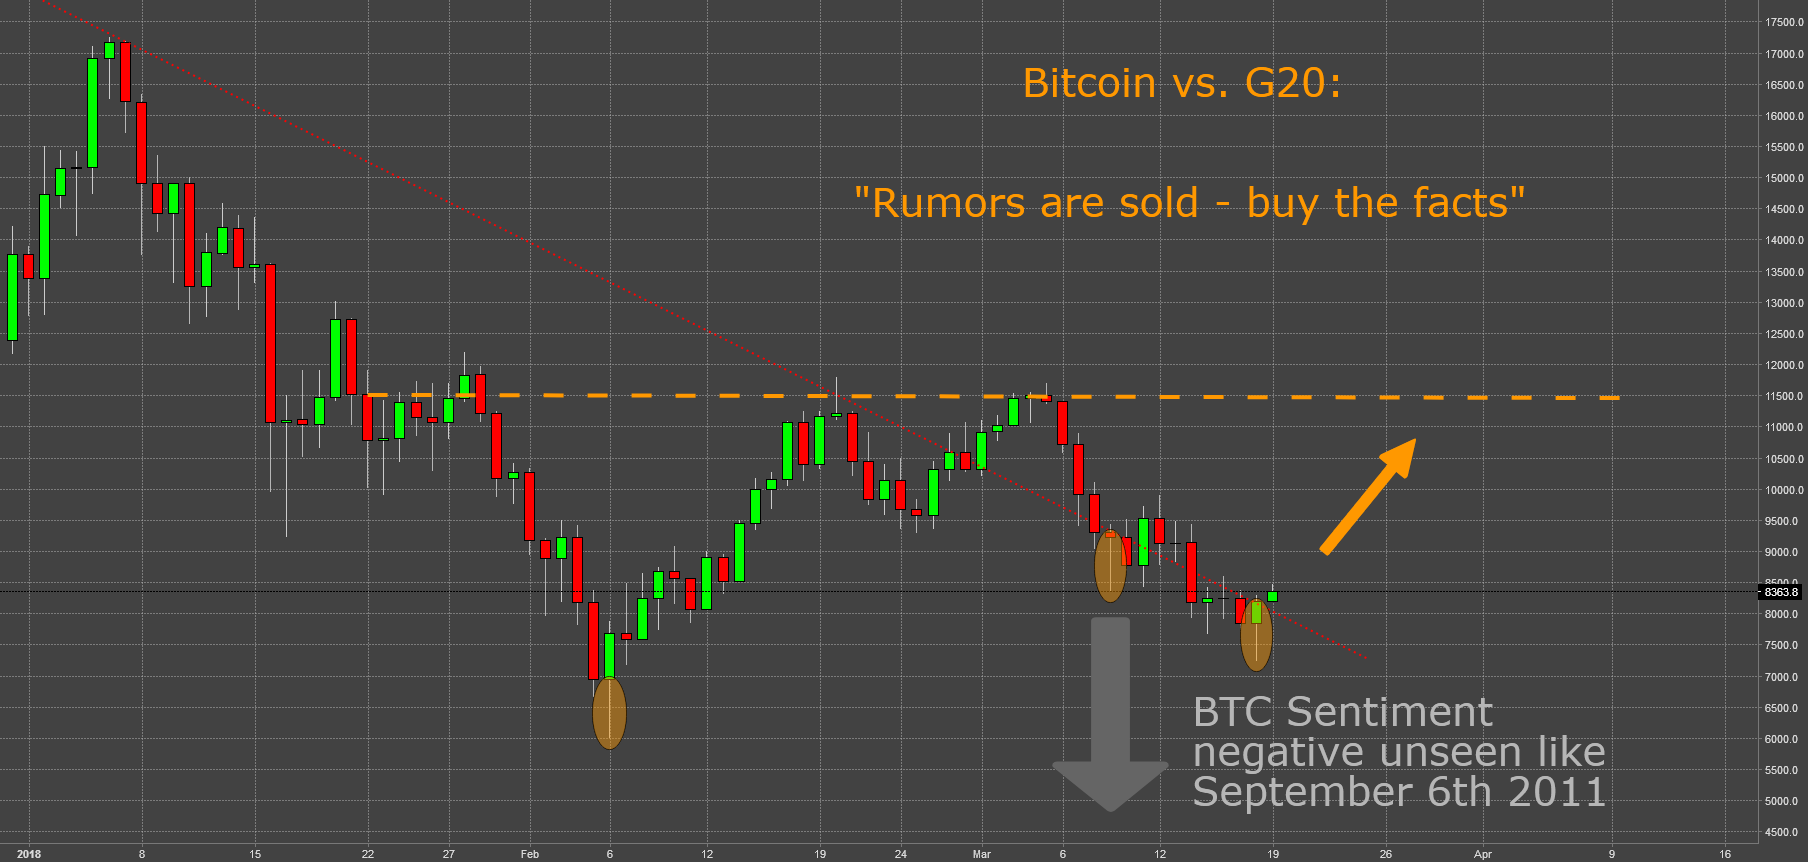 BTC: Short term risk on long trade - G20 rumors priced in